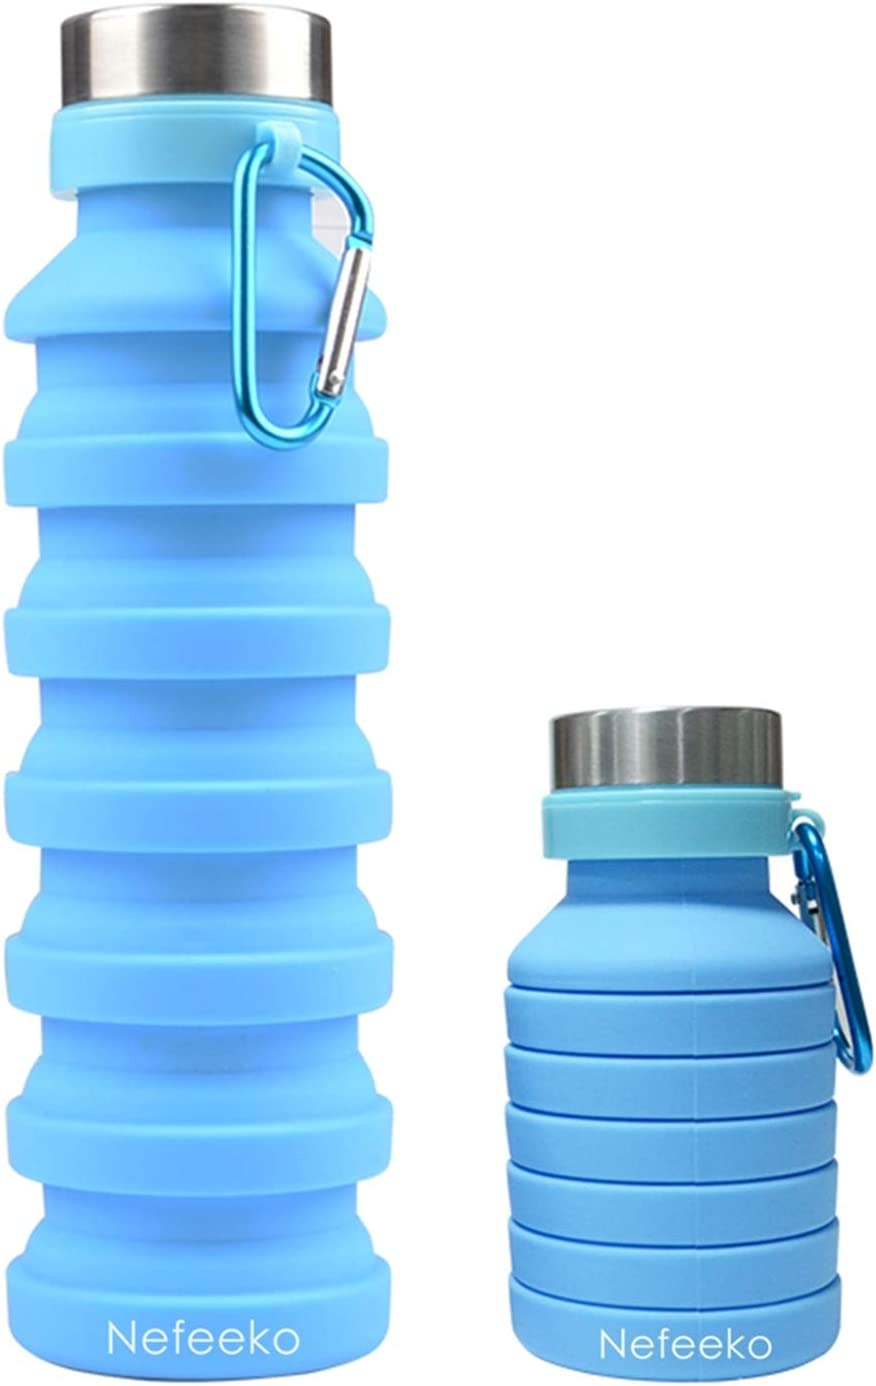 Collapsible water bottle - great for travel